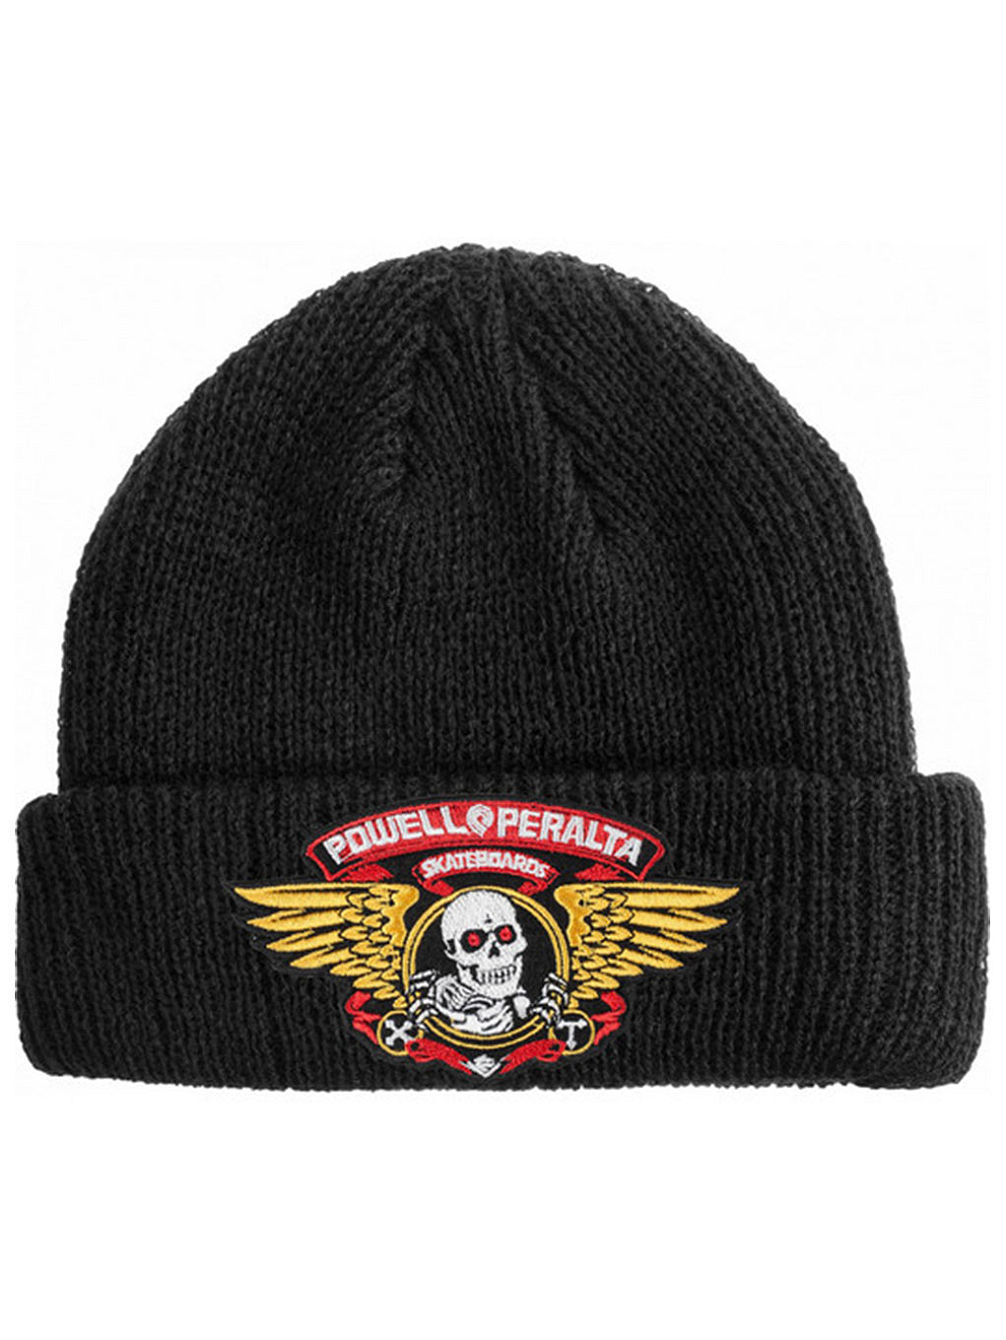 Winged Ripper Beanie